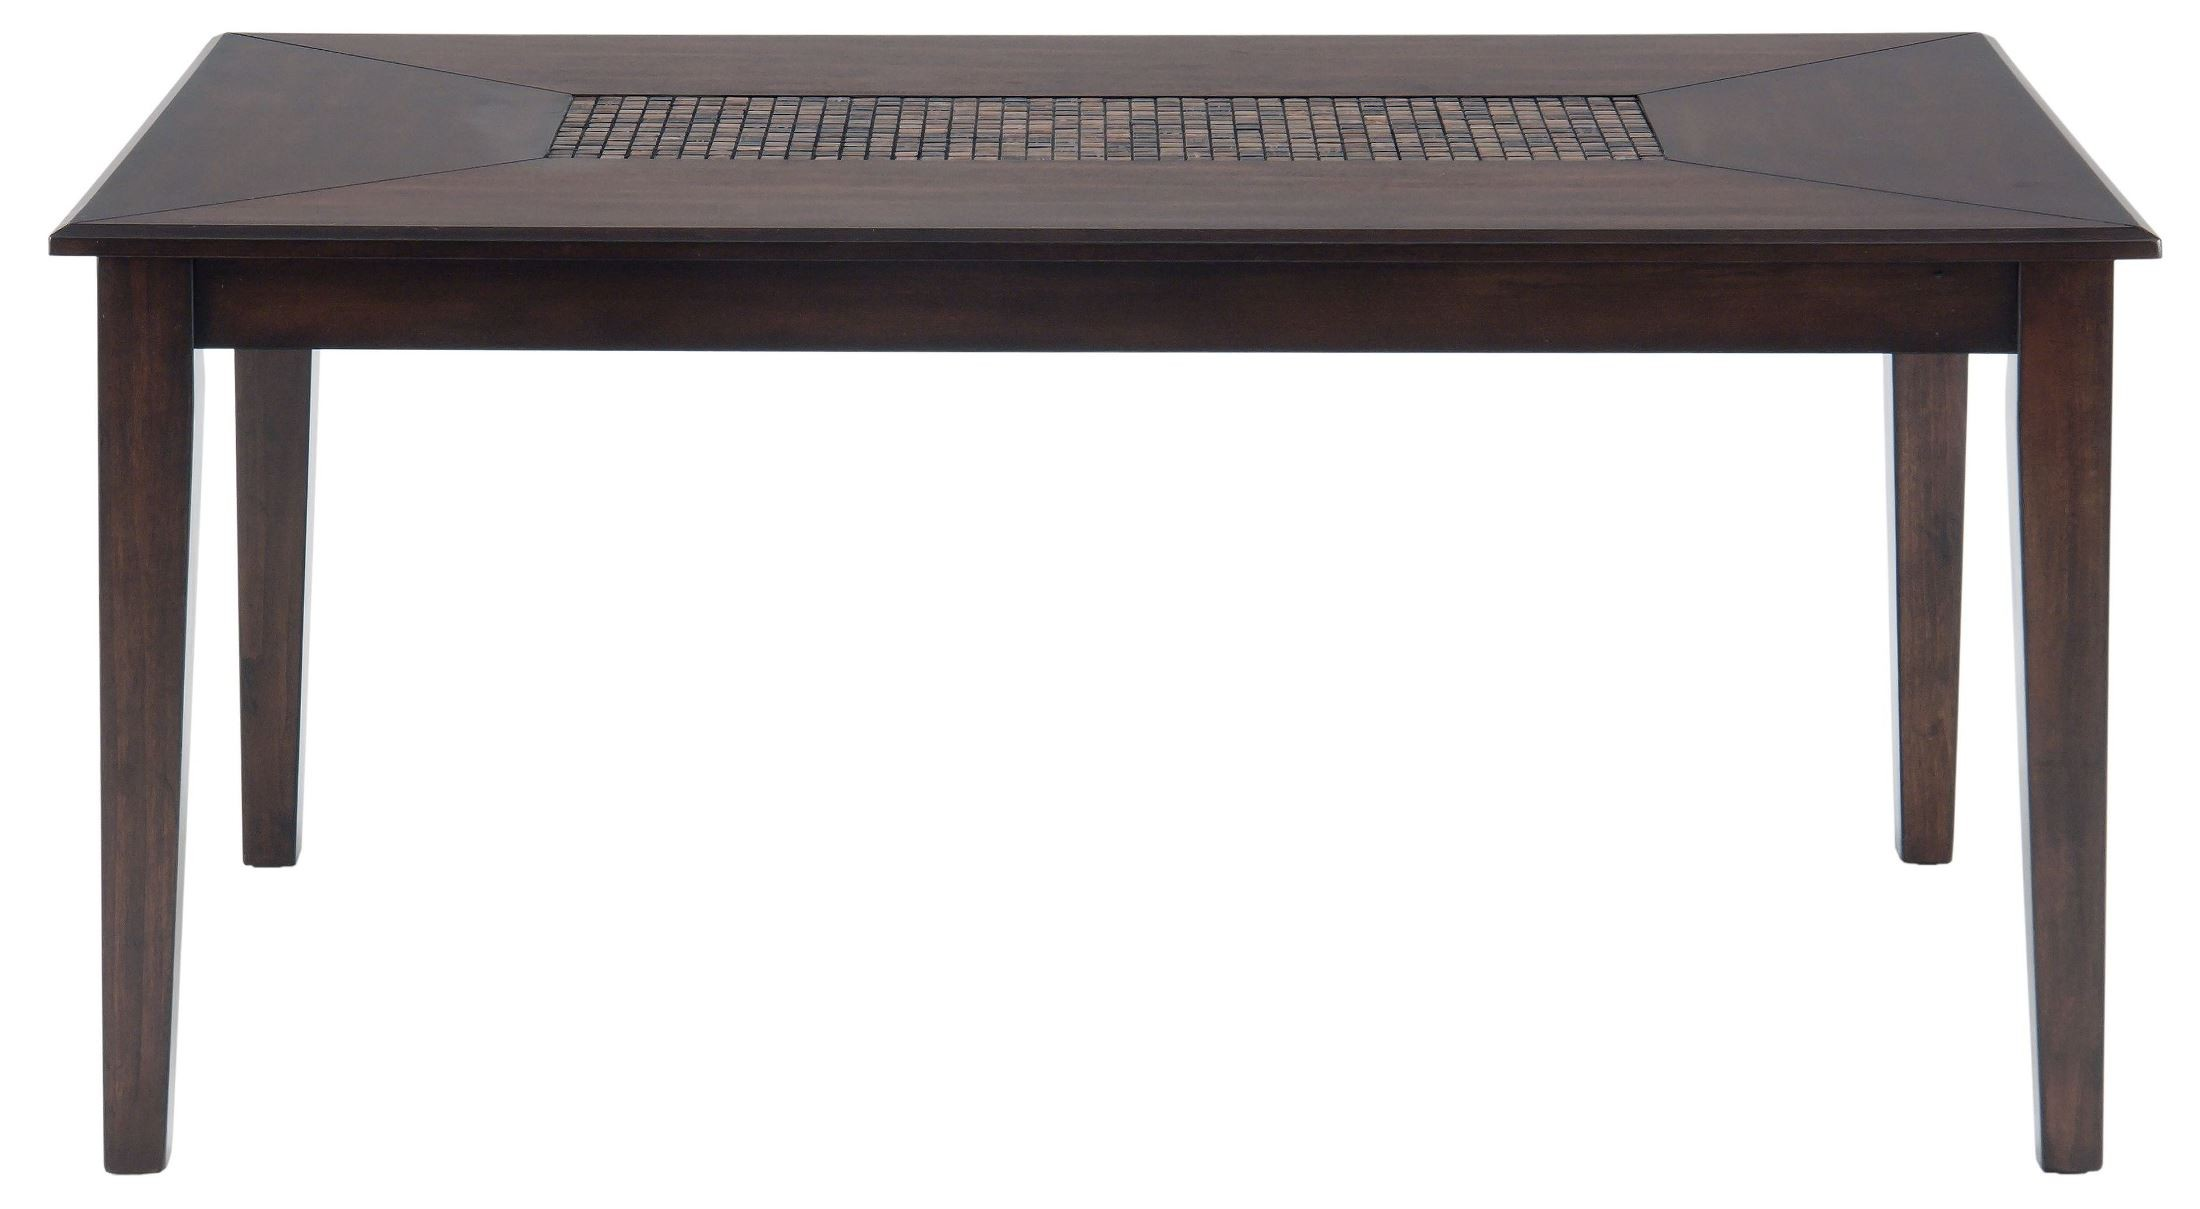 Baroque brown mosaic inlay dining table 697 64 jofran for Baroque dining table set